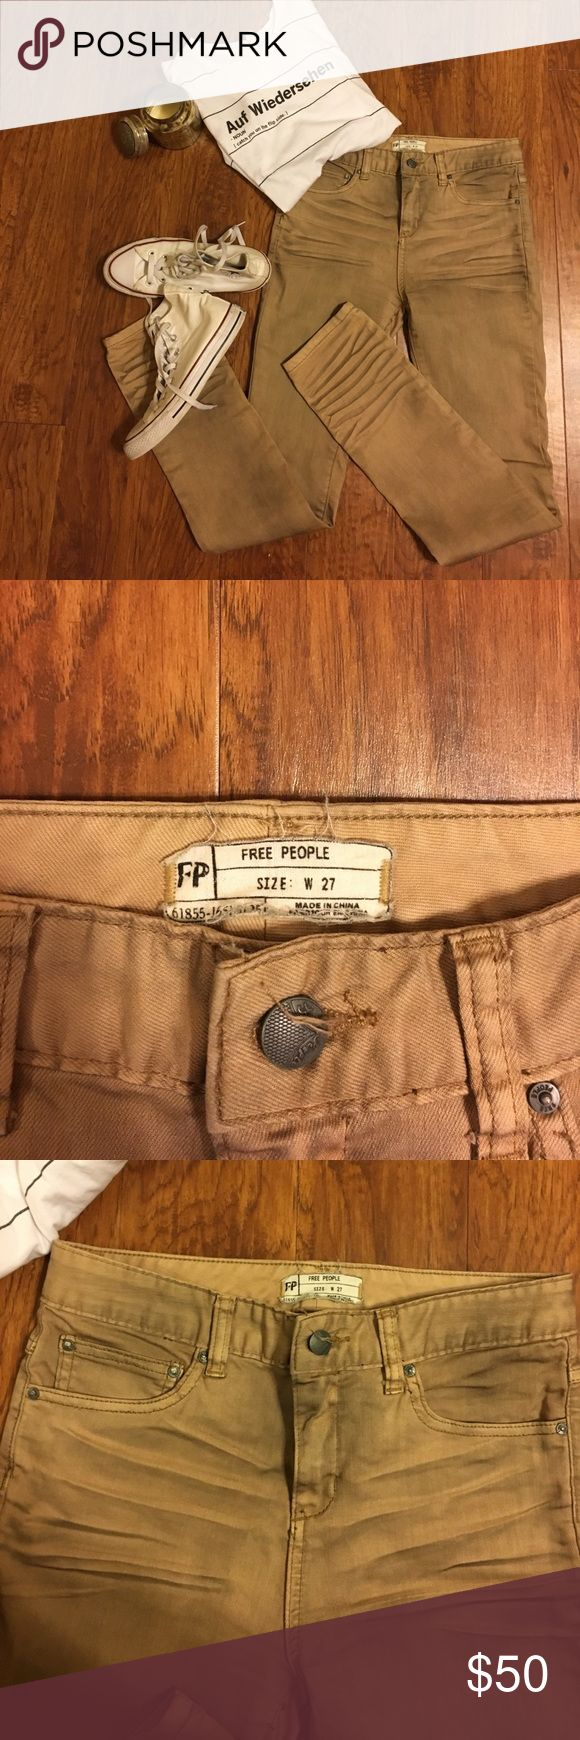 """Free people """"dirty"""" kaki jeans Super stylish and in perfect condition! Free People Pants Skinny"""